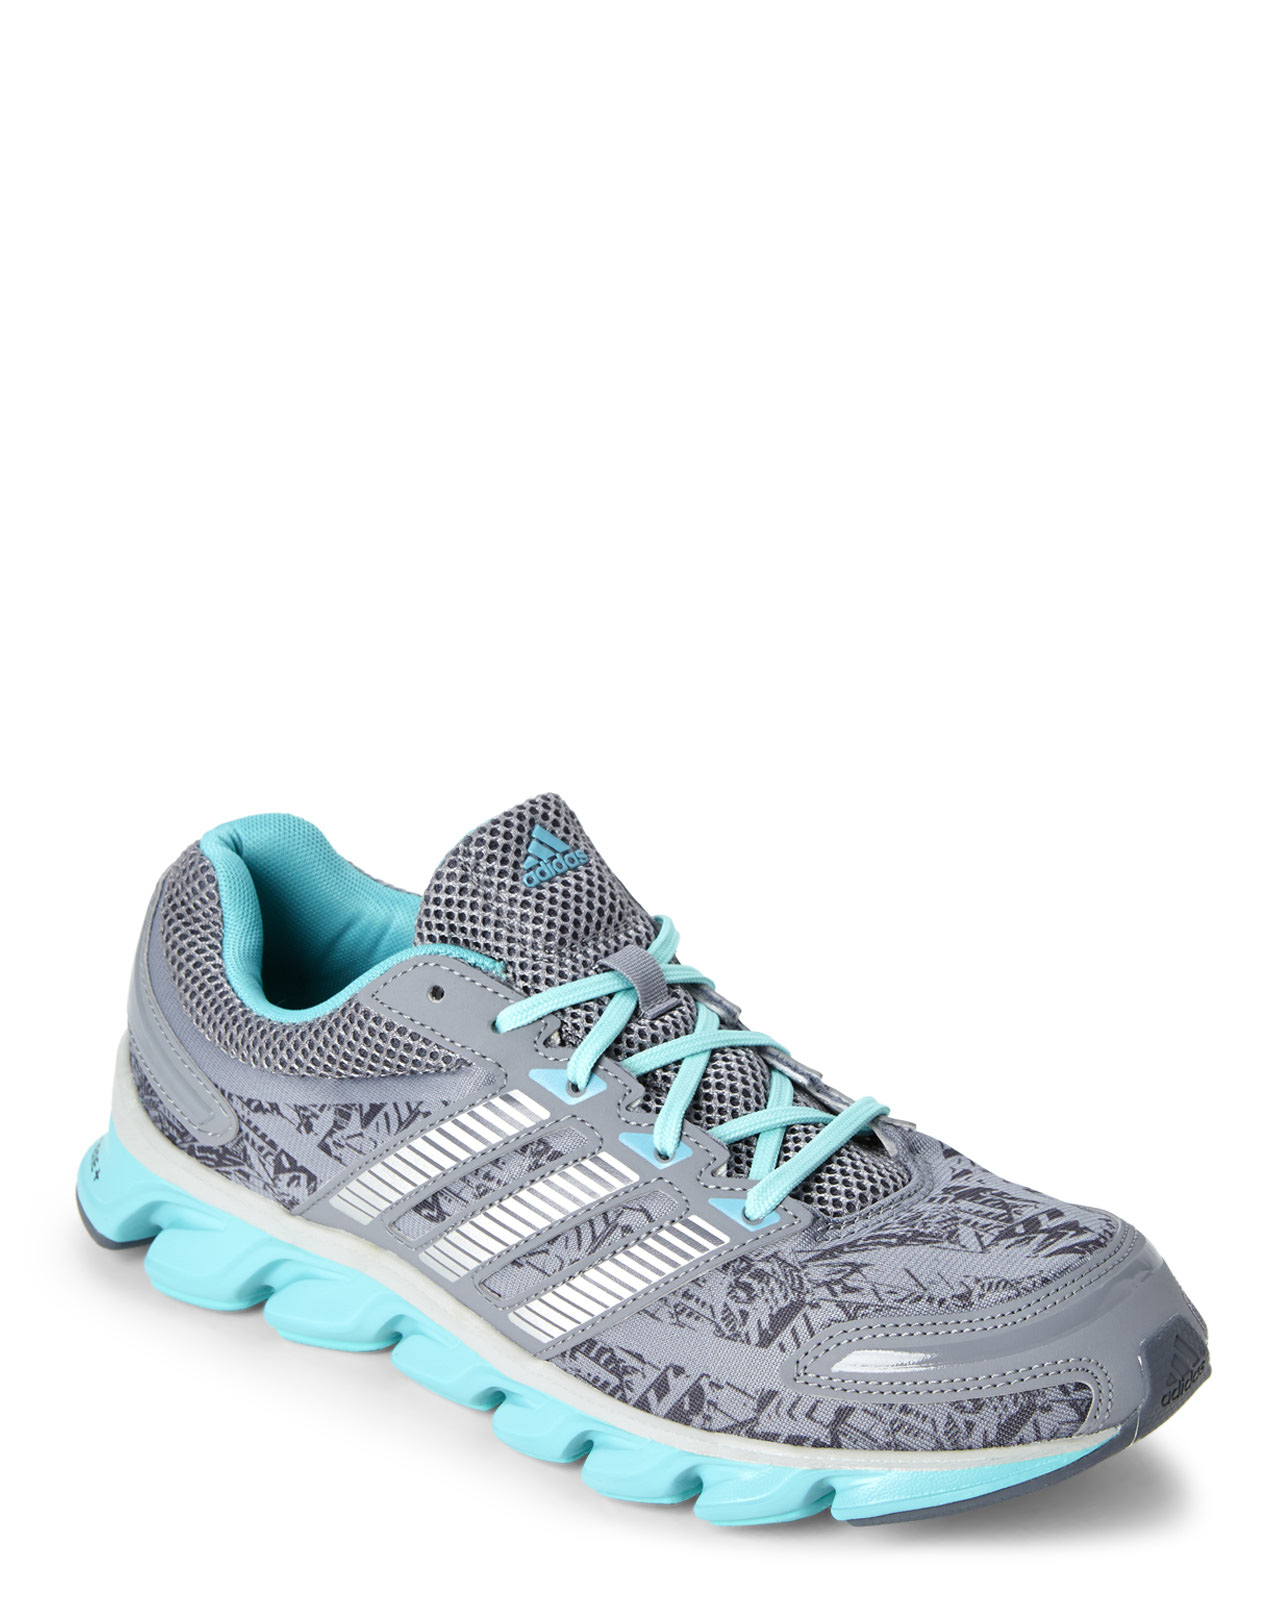 Running Shoes Charlotte